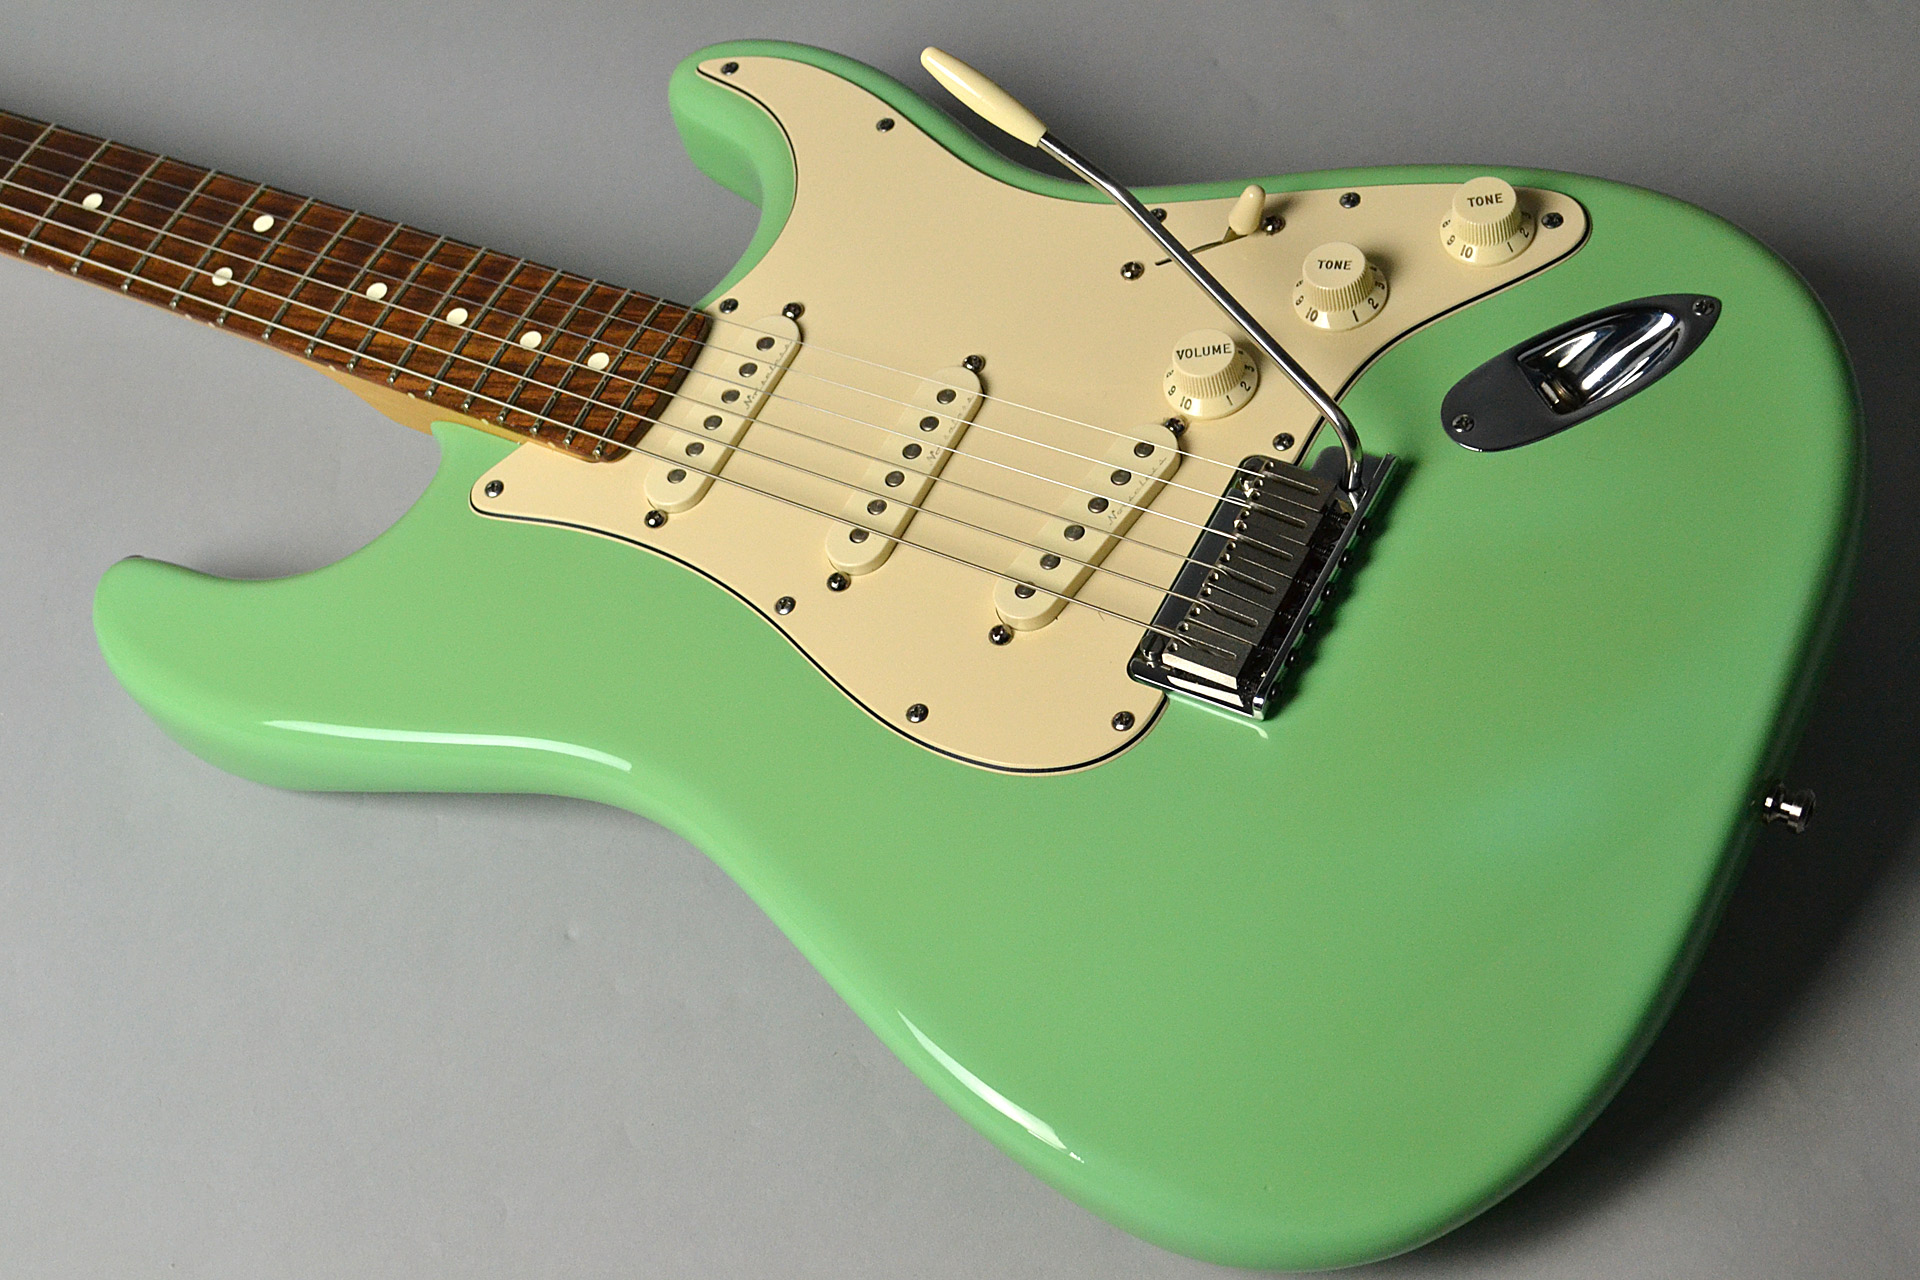 USED/ Jeff Beck Stratocaster Dual-coil Celamic Noise-less Pickupの全体画像(縦)